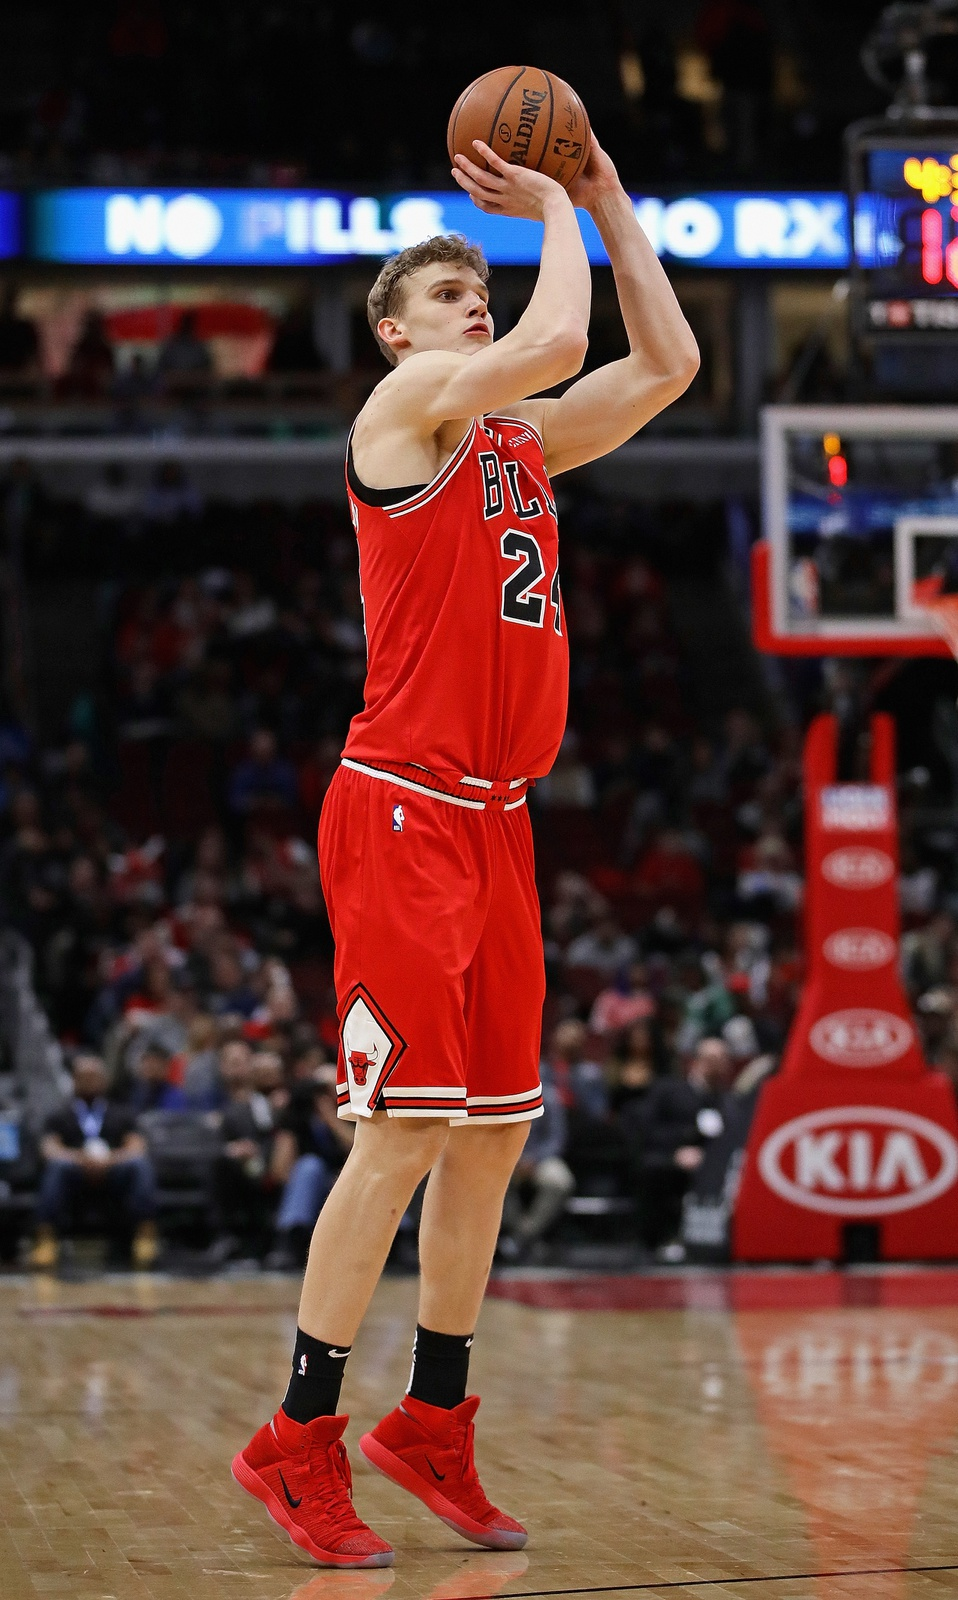 Lauri Markkanen #24 of the Chicago Bulls shoots three point shot against the Atlanta Hawks at the United Center on January 23, 2019 in Chicago, Illinois. The Hawks defeated the Bulls 121-101.